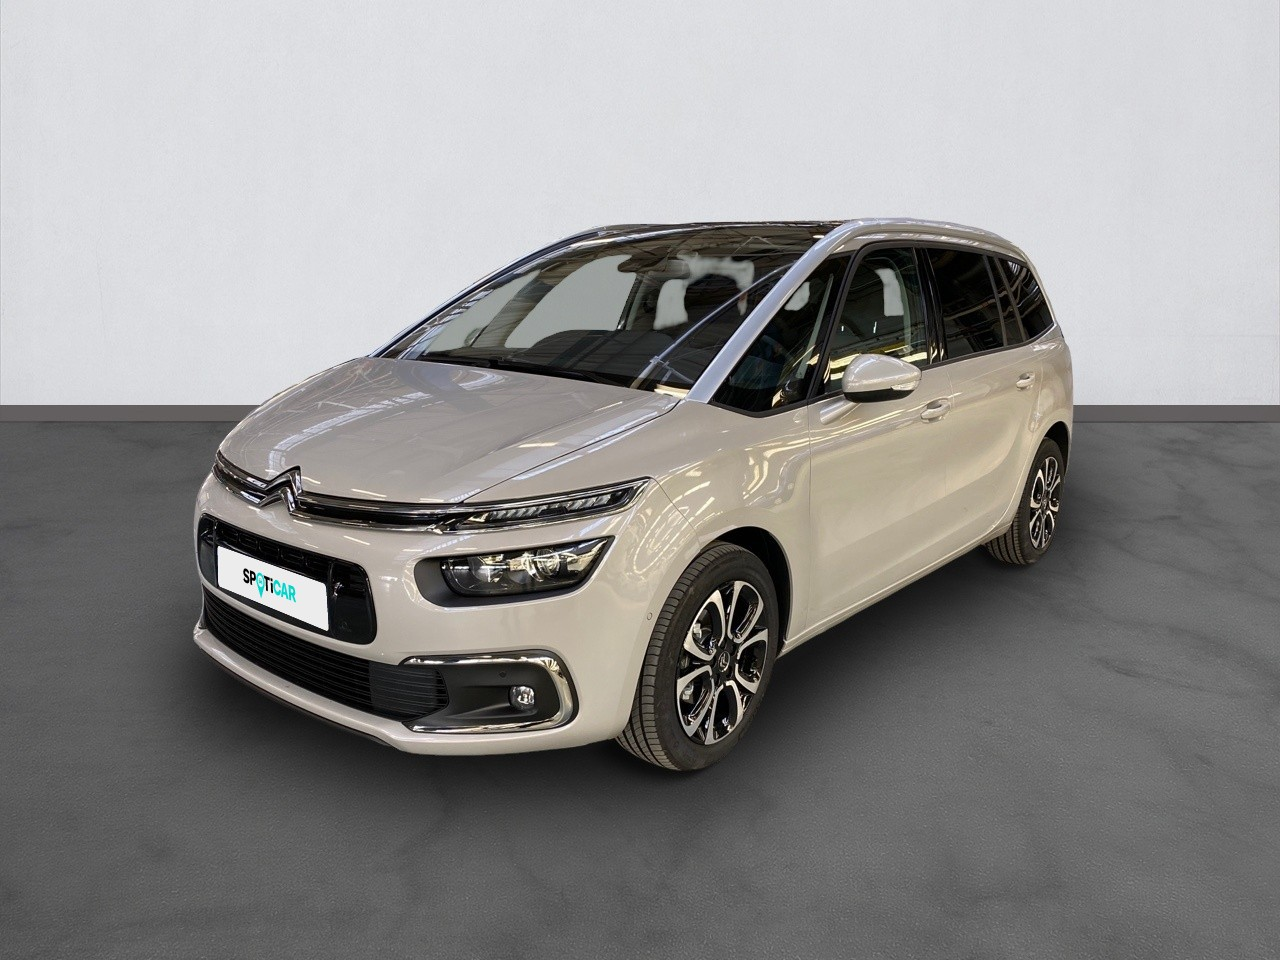 CITROEN GRAND C4 SPACETOURER BLUEHDI 130 S&S BVM6 SHINE PACK